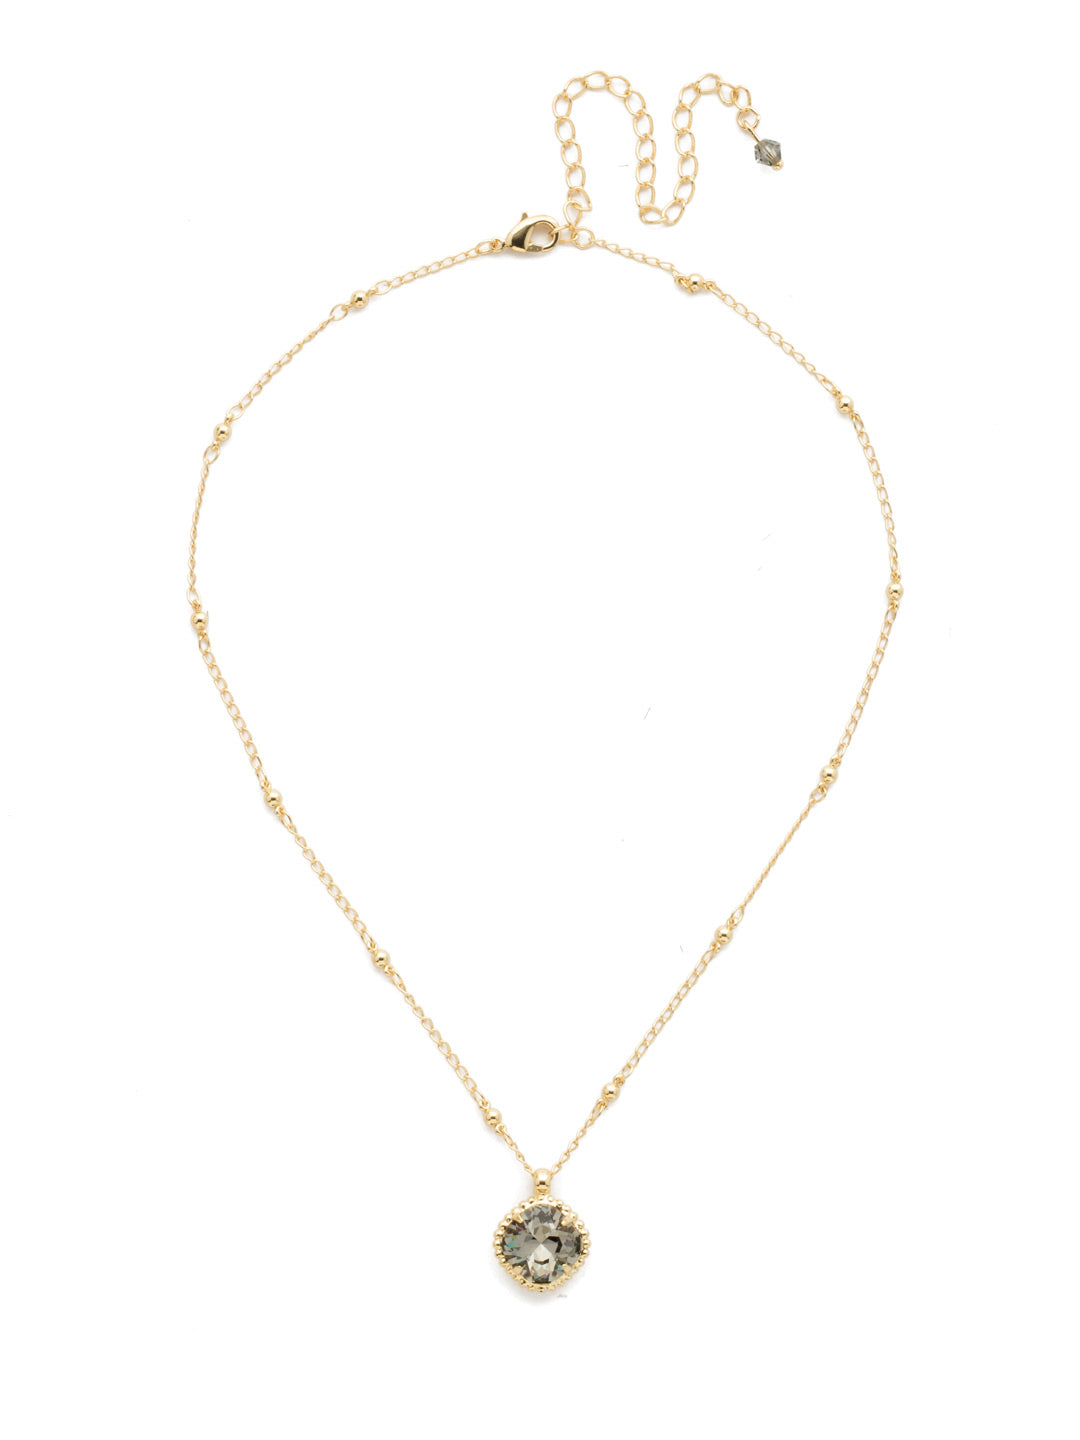 Cushion-Cut Pendant Necklace - NDS50BGBD